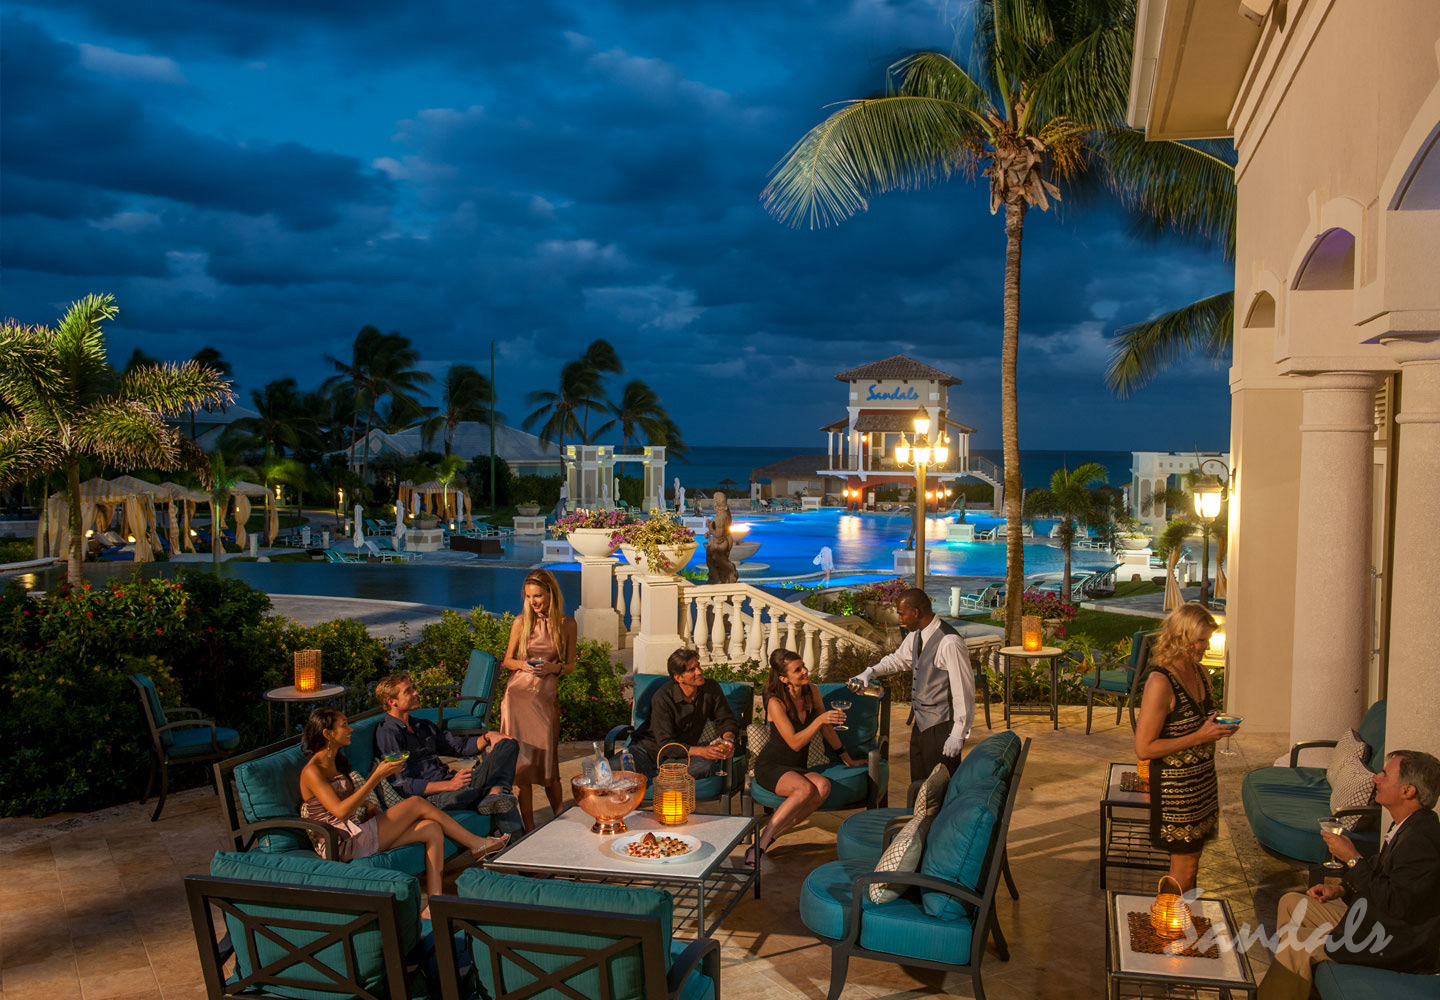 Travel Agency All-Inclusive Resort Sandals Emerald Bay 092